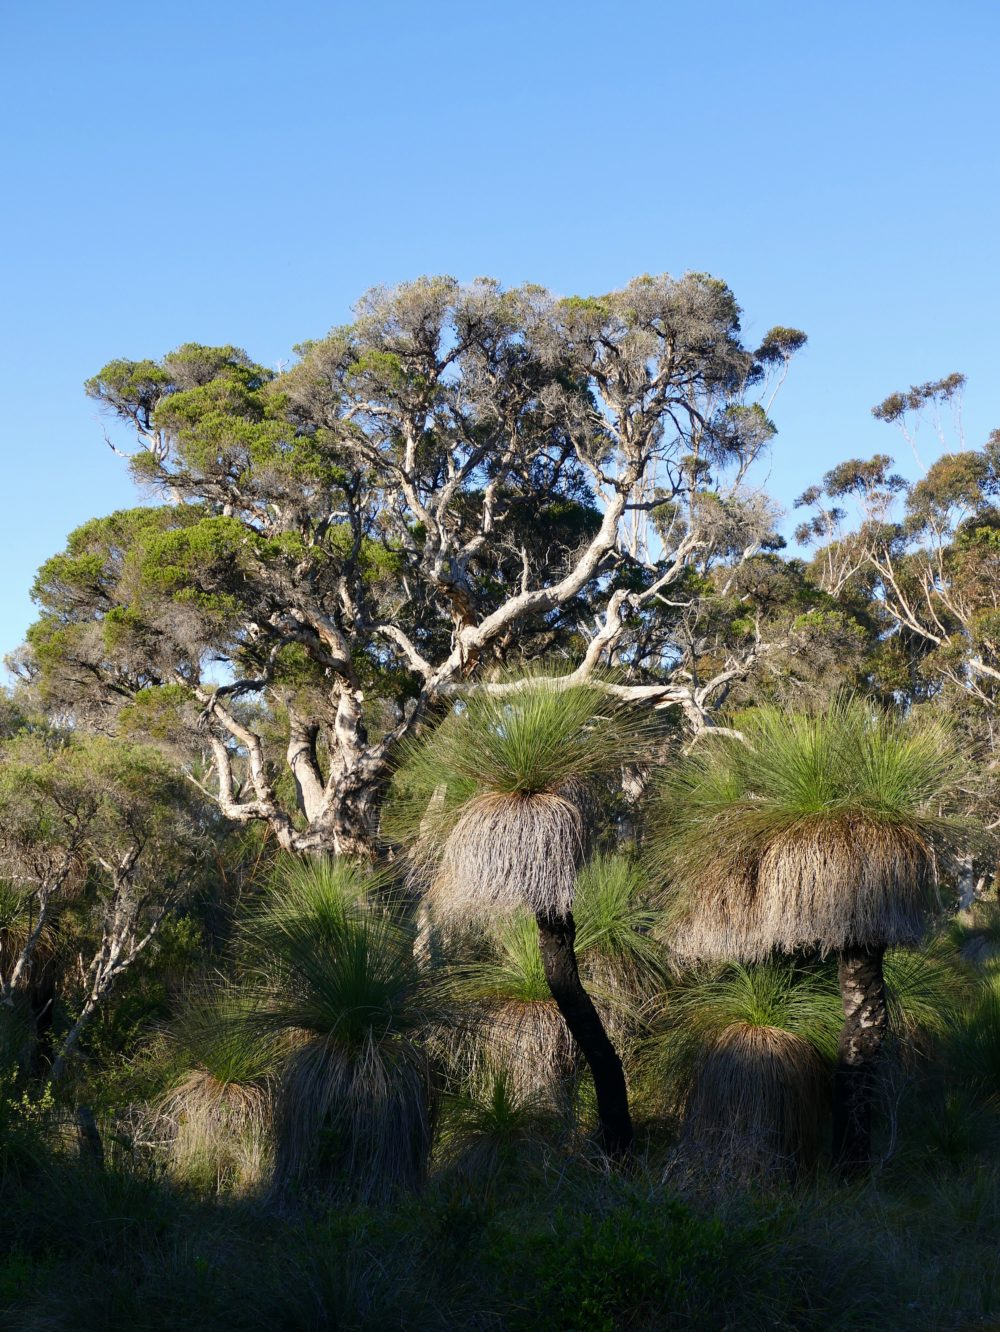 Grasstrees, very big/old paperbark. All photos copyright Doug Spencer.